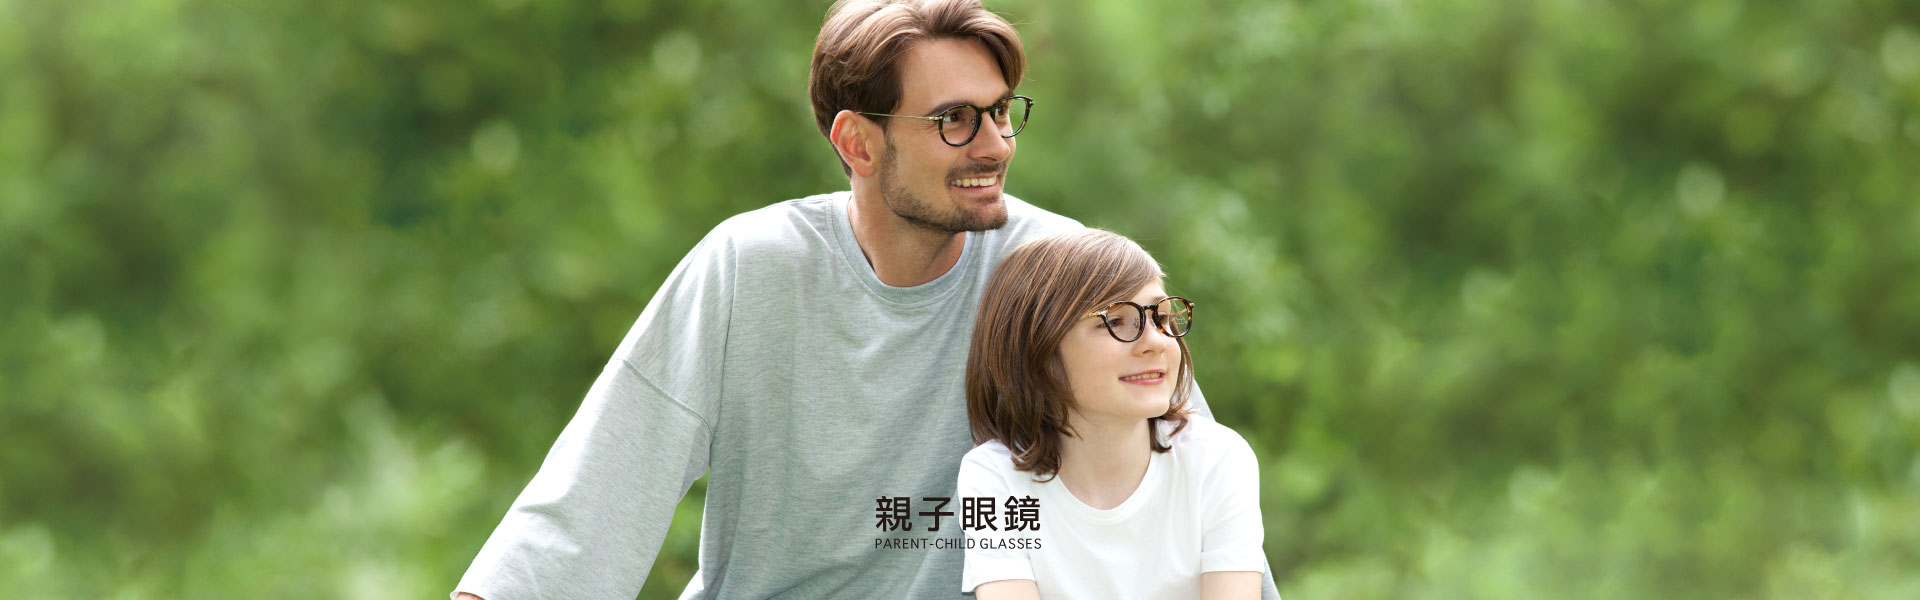 親子眼鏡 -PARENT-CHILD GLASSES-